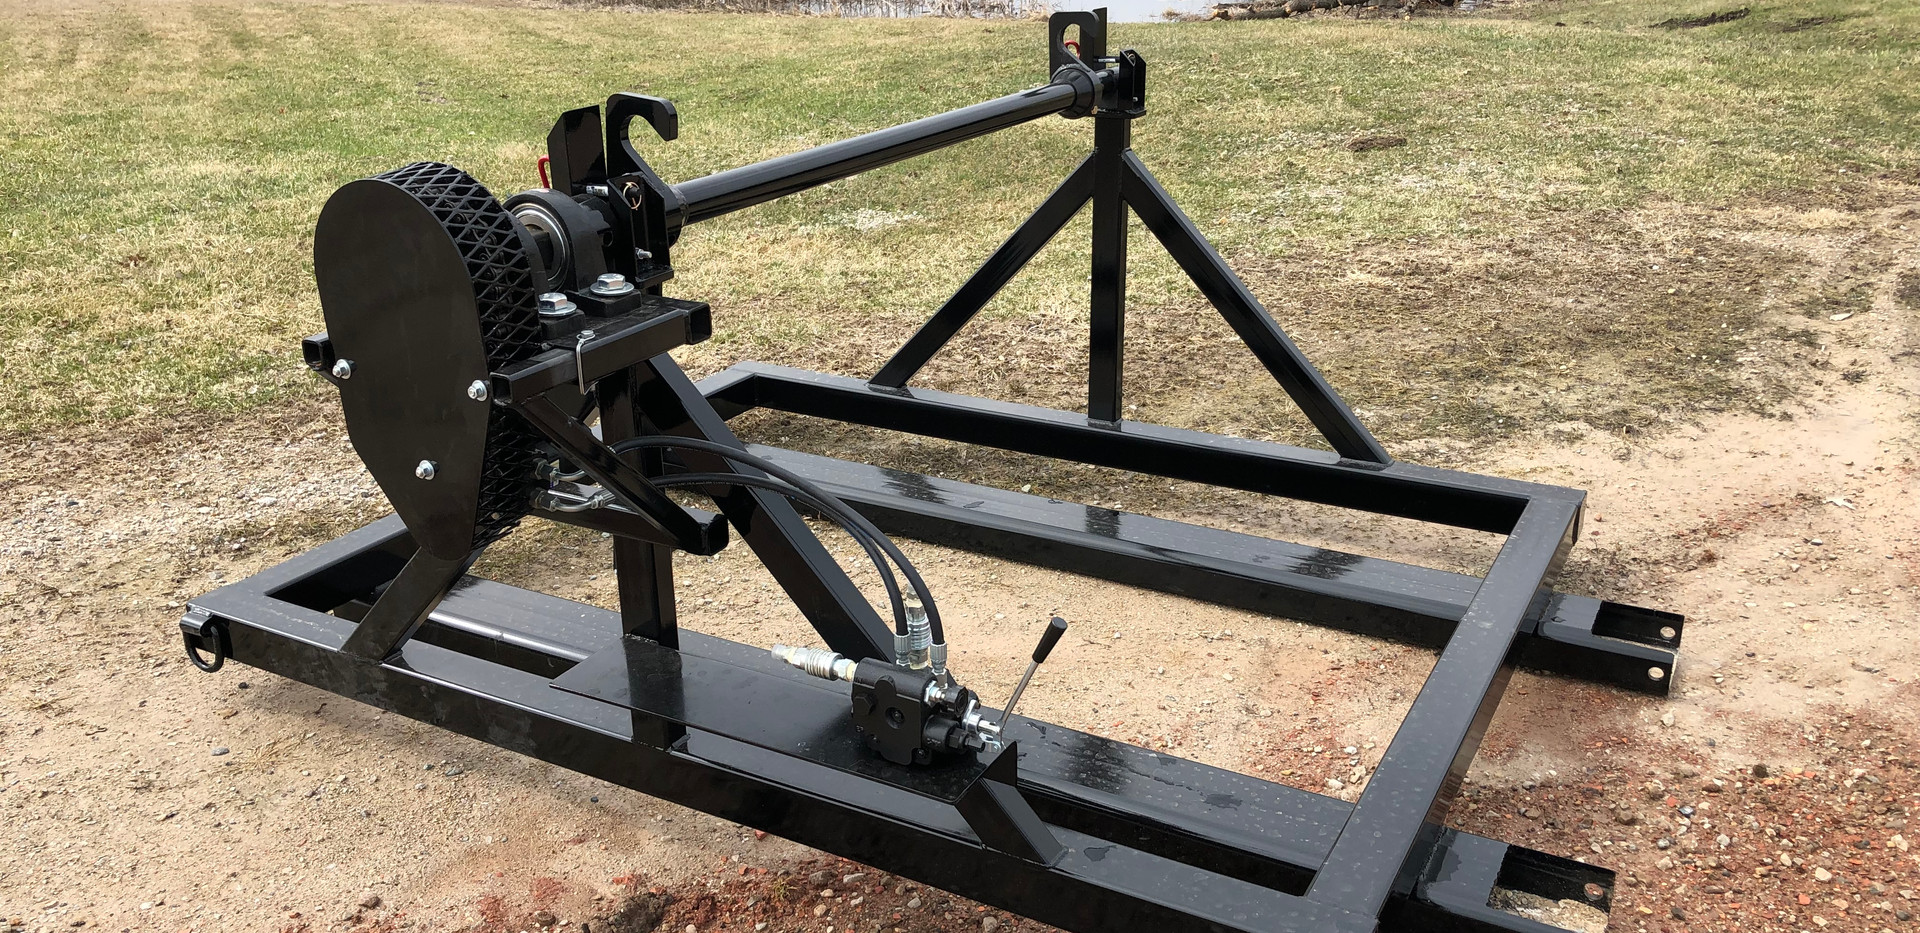 Reel Stand With Retriever Attachment